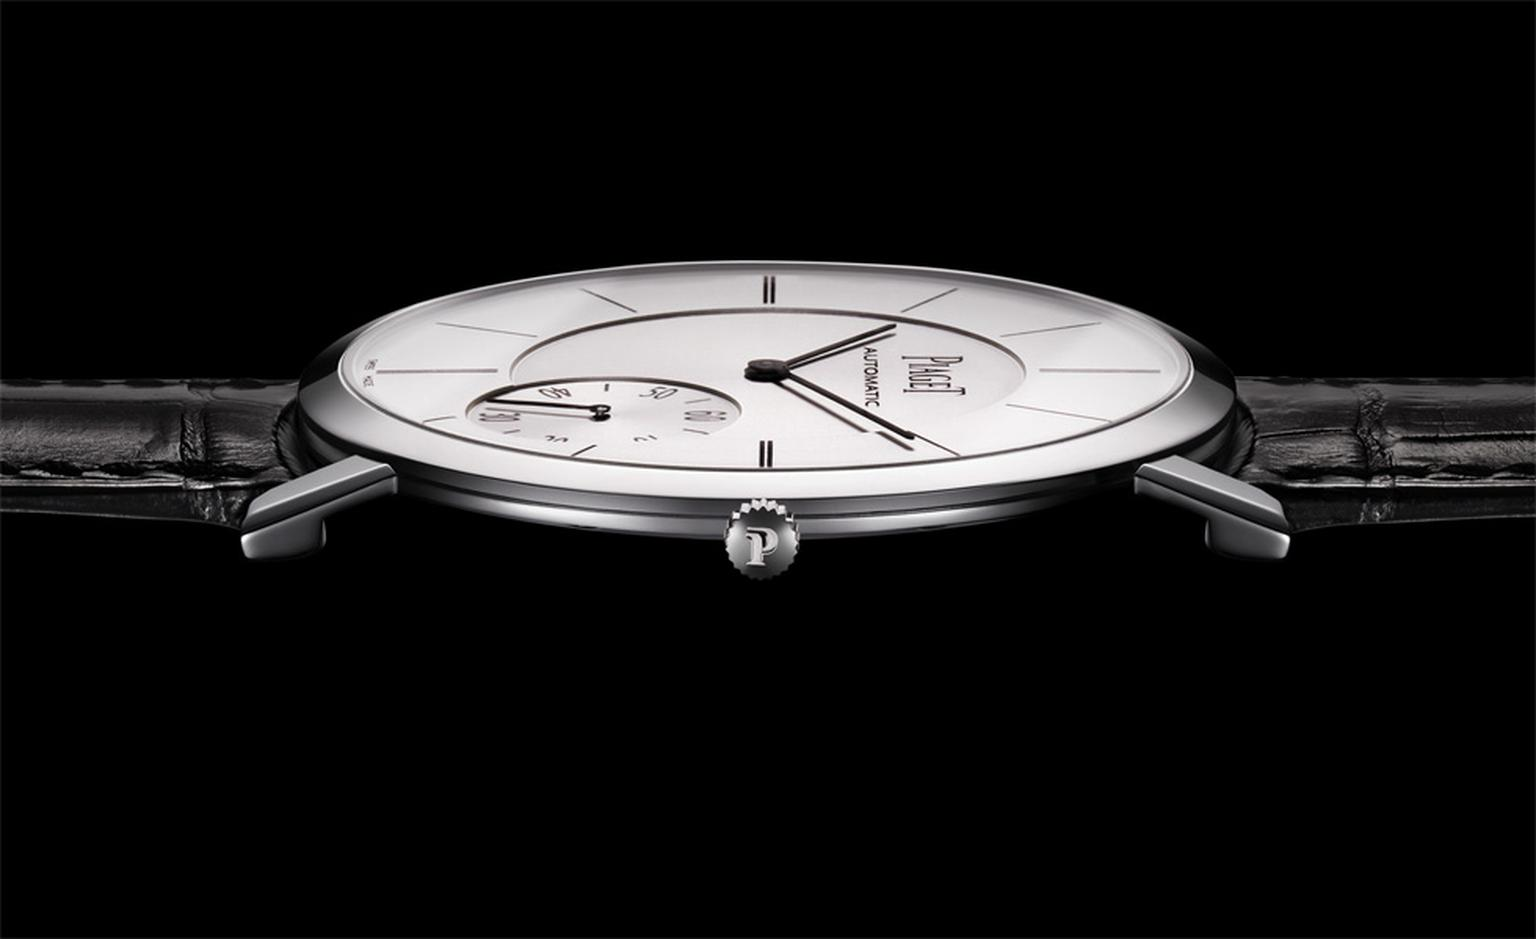 Wafer-thin, the Piaget Altiplano is but 5.25mm high